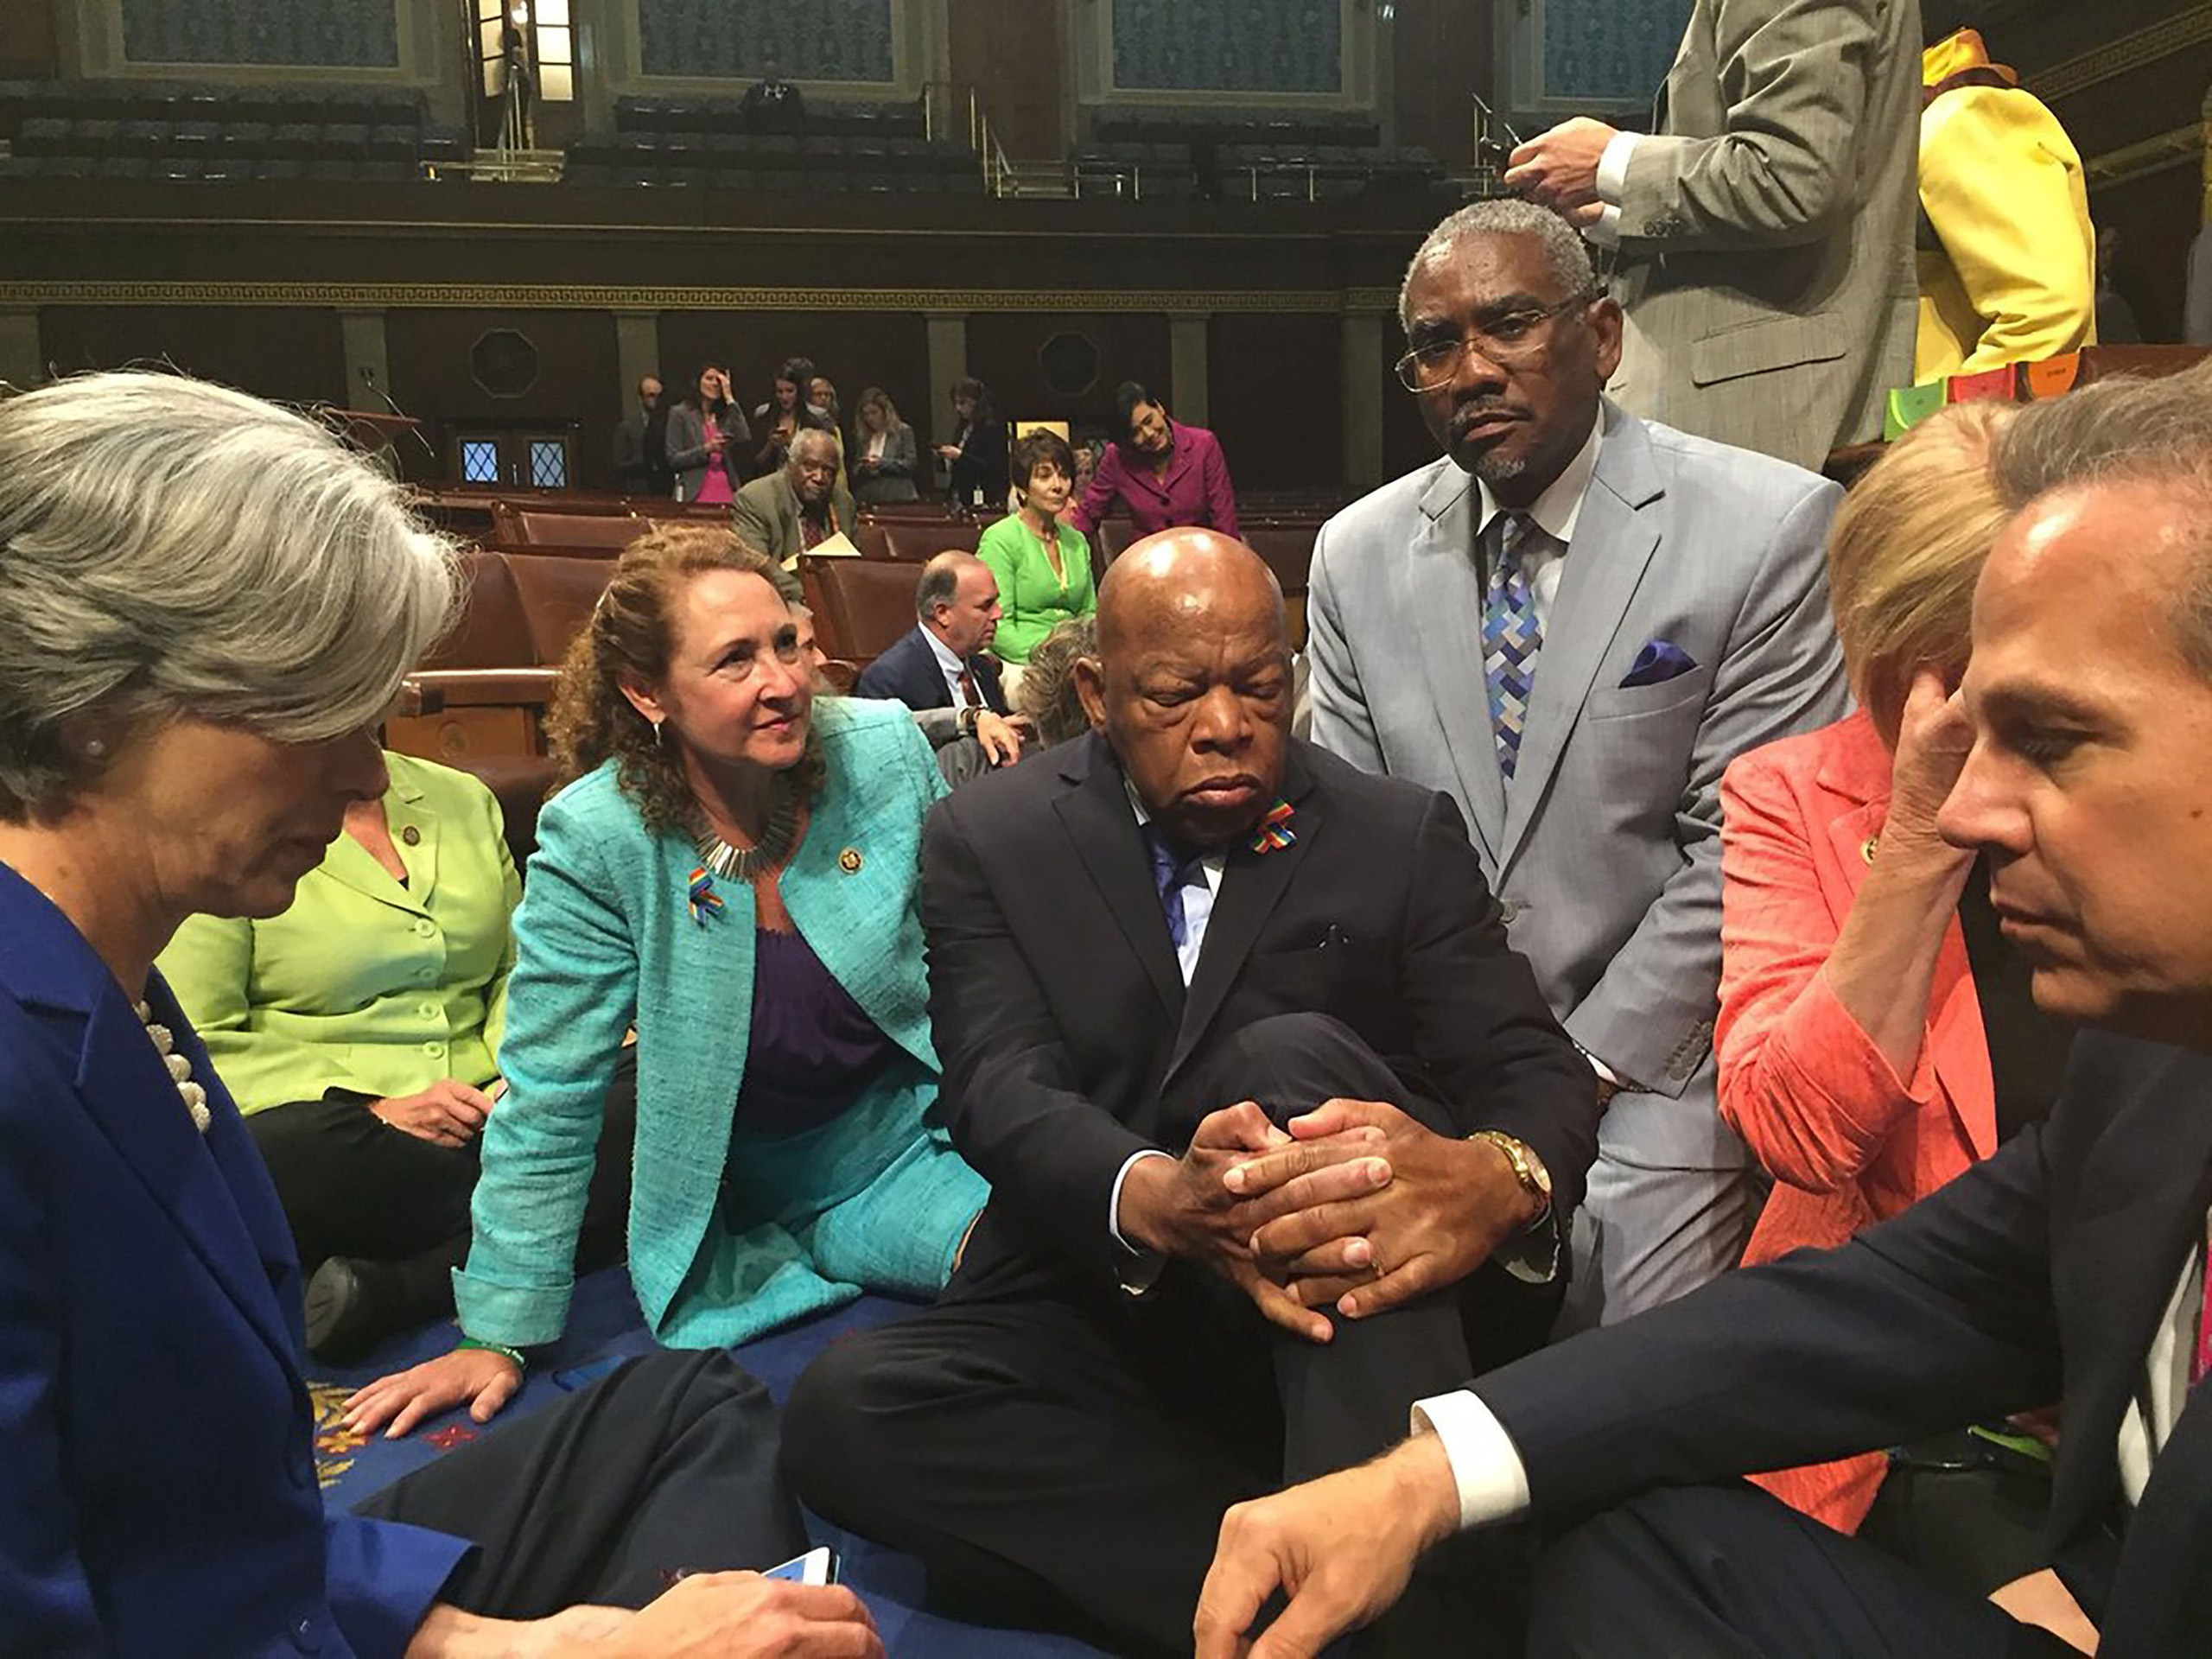 Rep. Esty(2n-L) with Rep. John Lewis(C) and other members of Congress staging a sit-in on the floor of the US House of Representatives in Washington, D.C. on June 22, 2016.